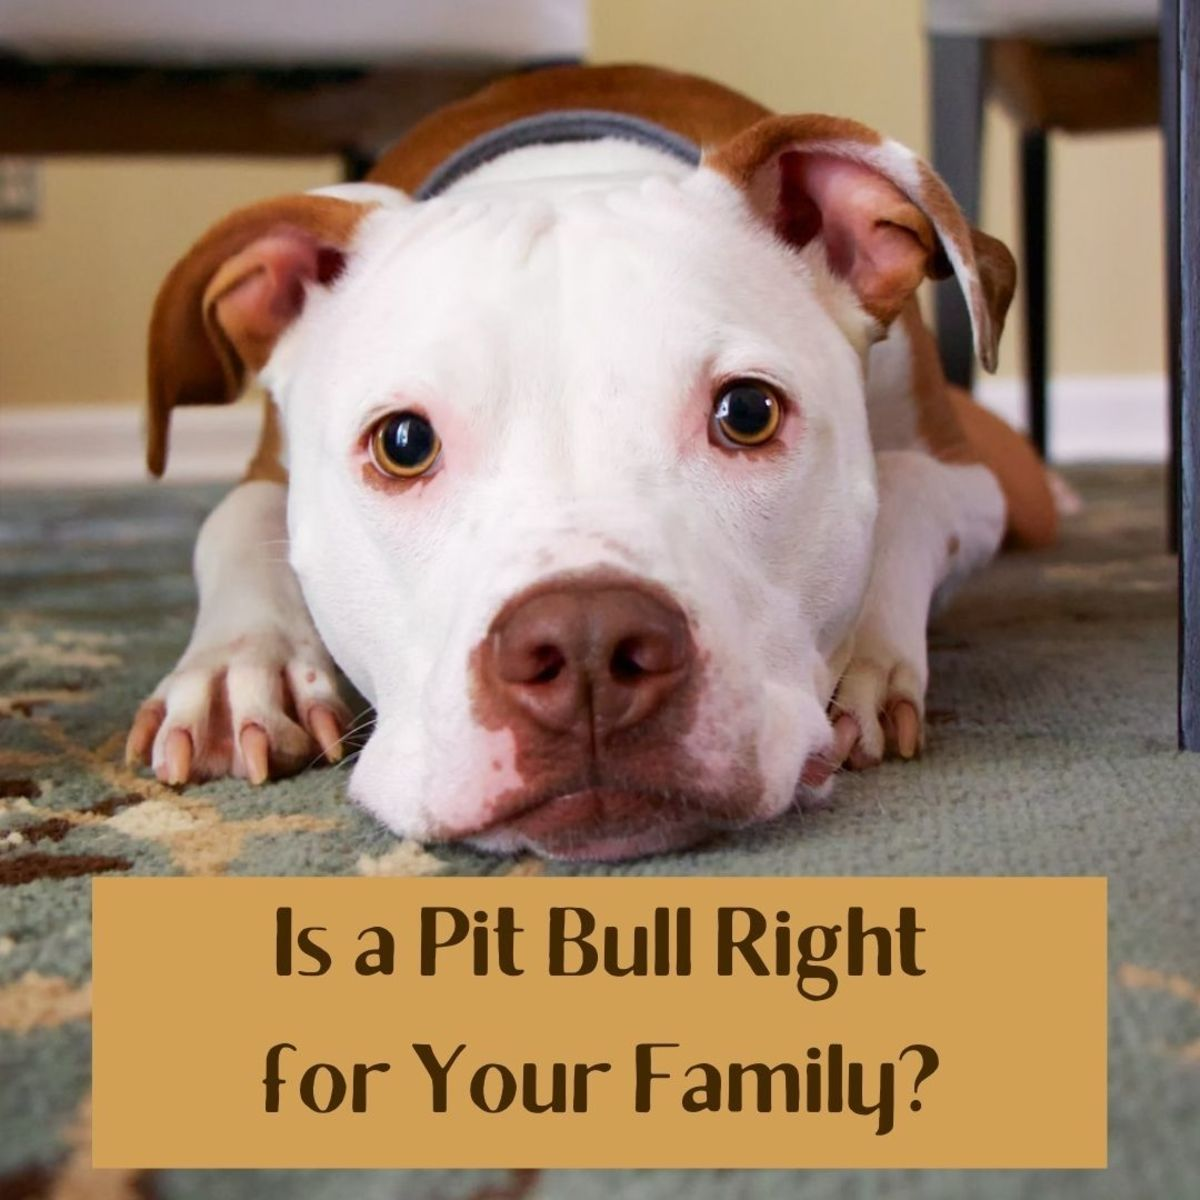 Many people who bring pit bulls home to their family aren't prepared for them.